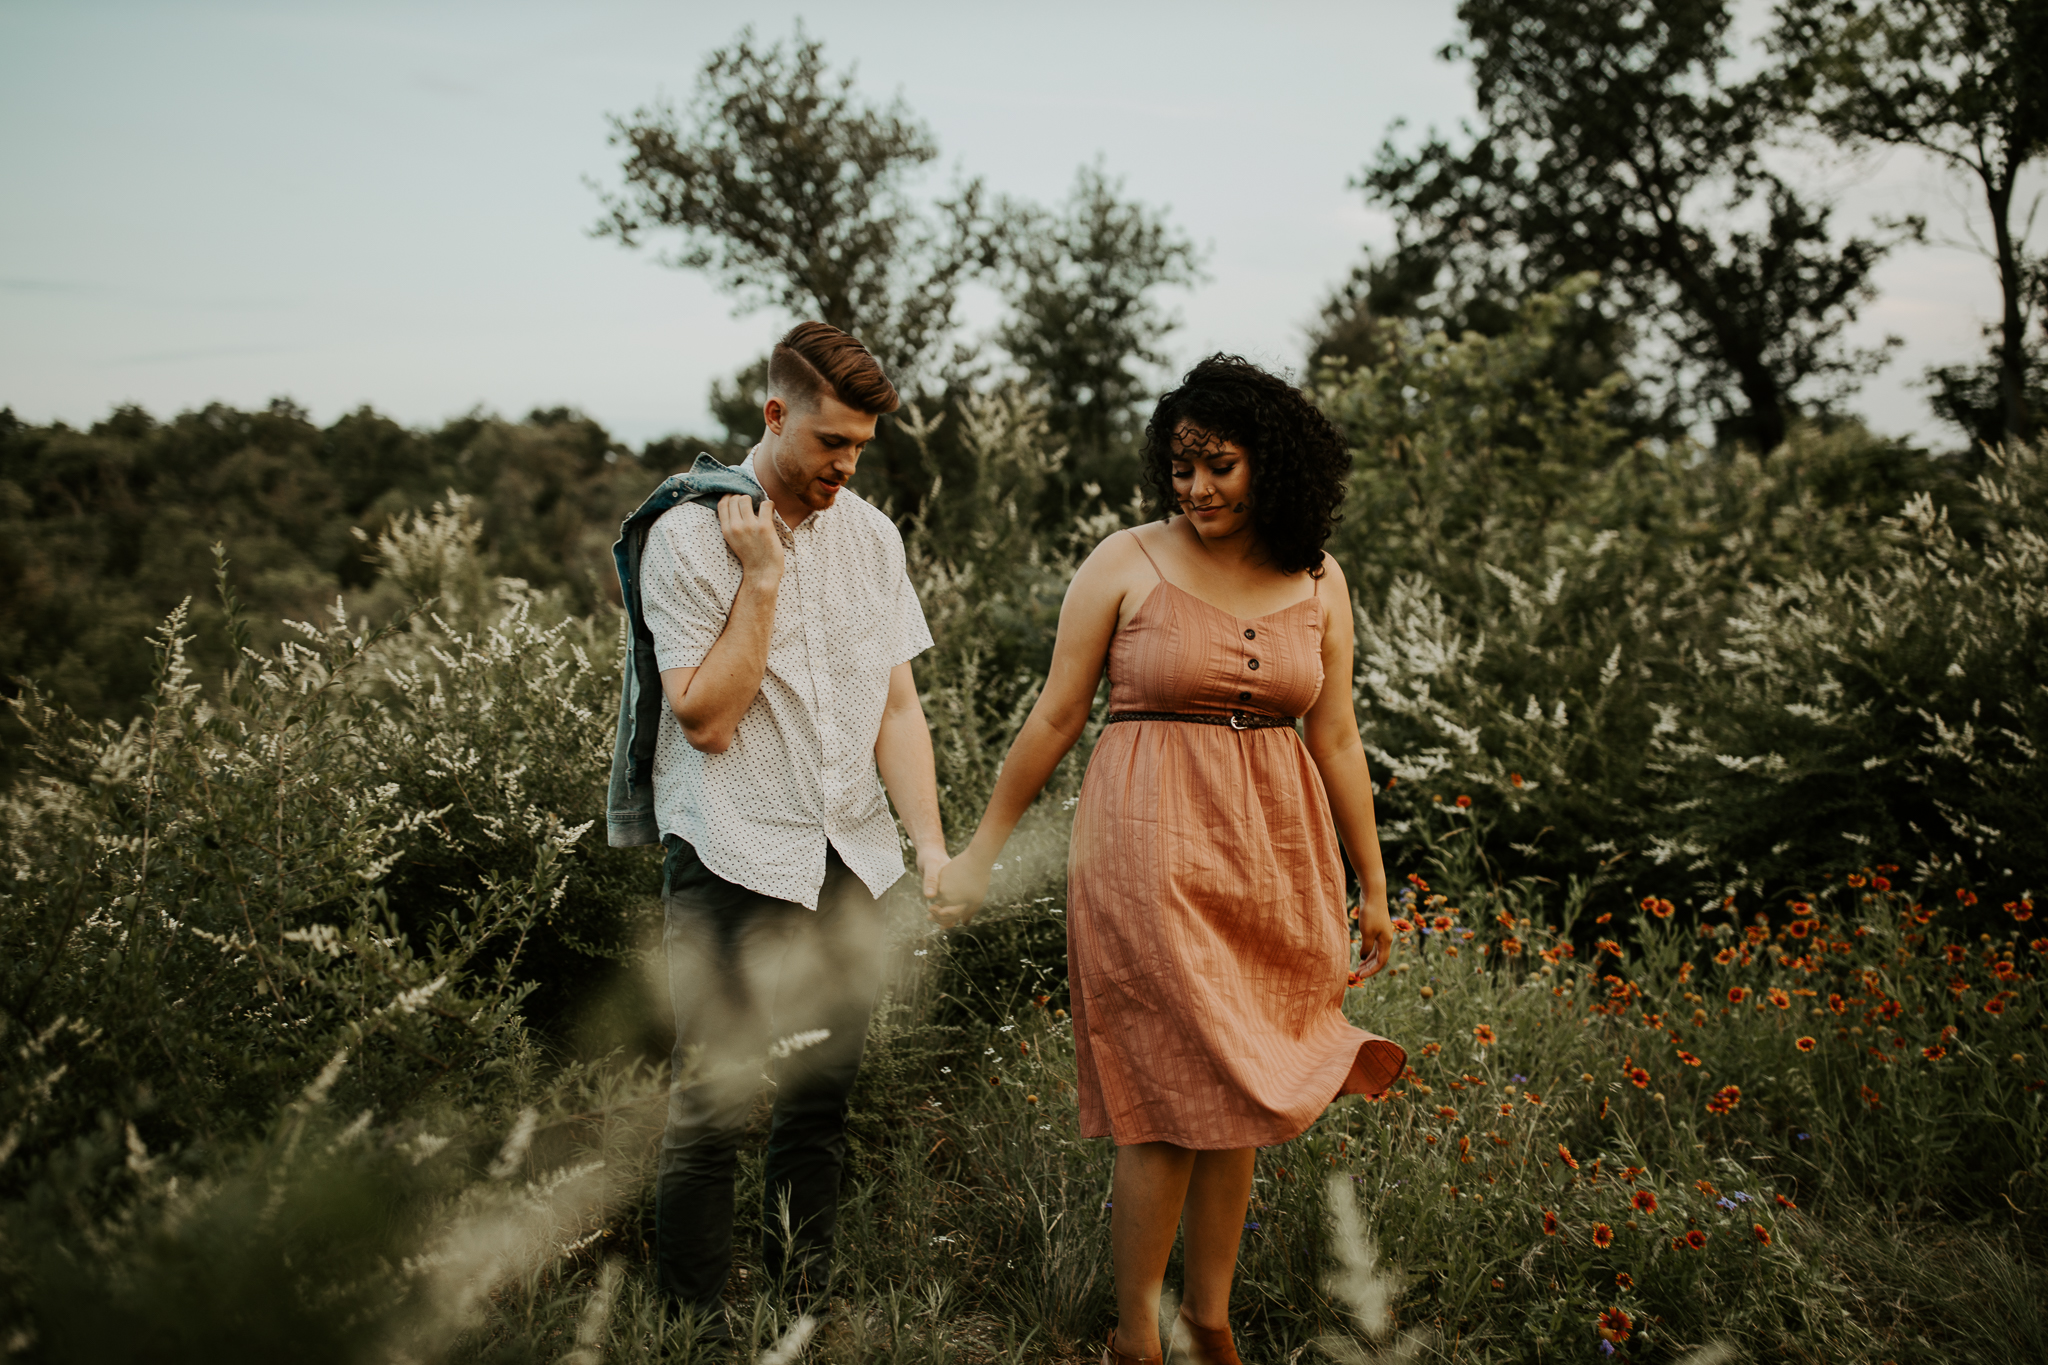 Laken-Mackenzie-Photography-Dallas-Fort-Worth-Engagement-Photographer-South-side-Main-Fort-Worth-Roselyn-Ryan-Engagment (17 of 22).jpg